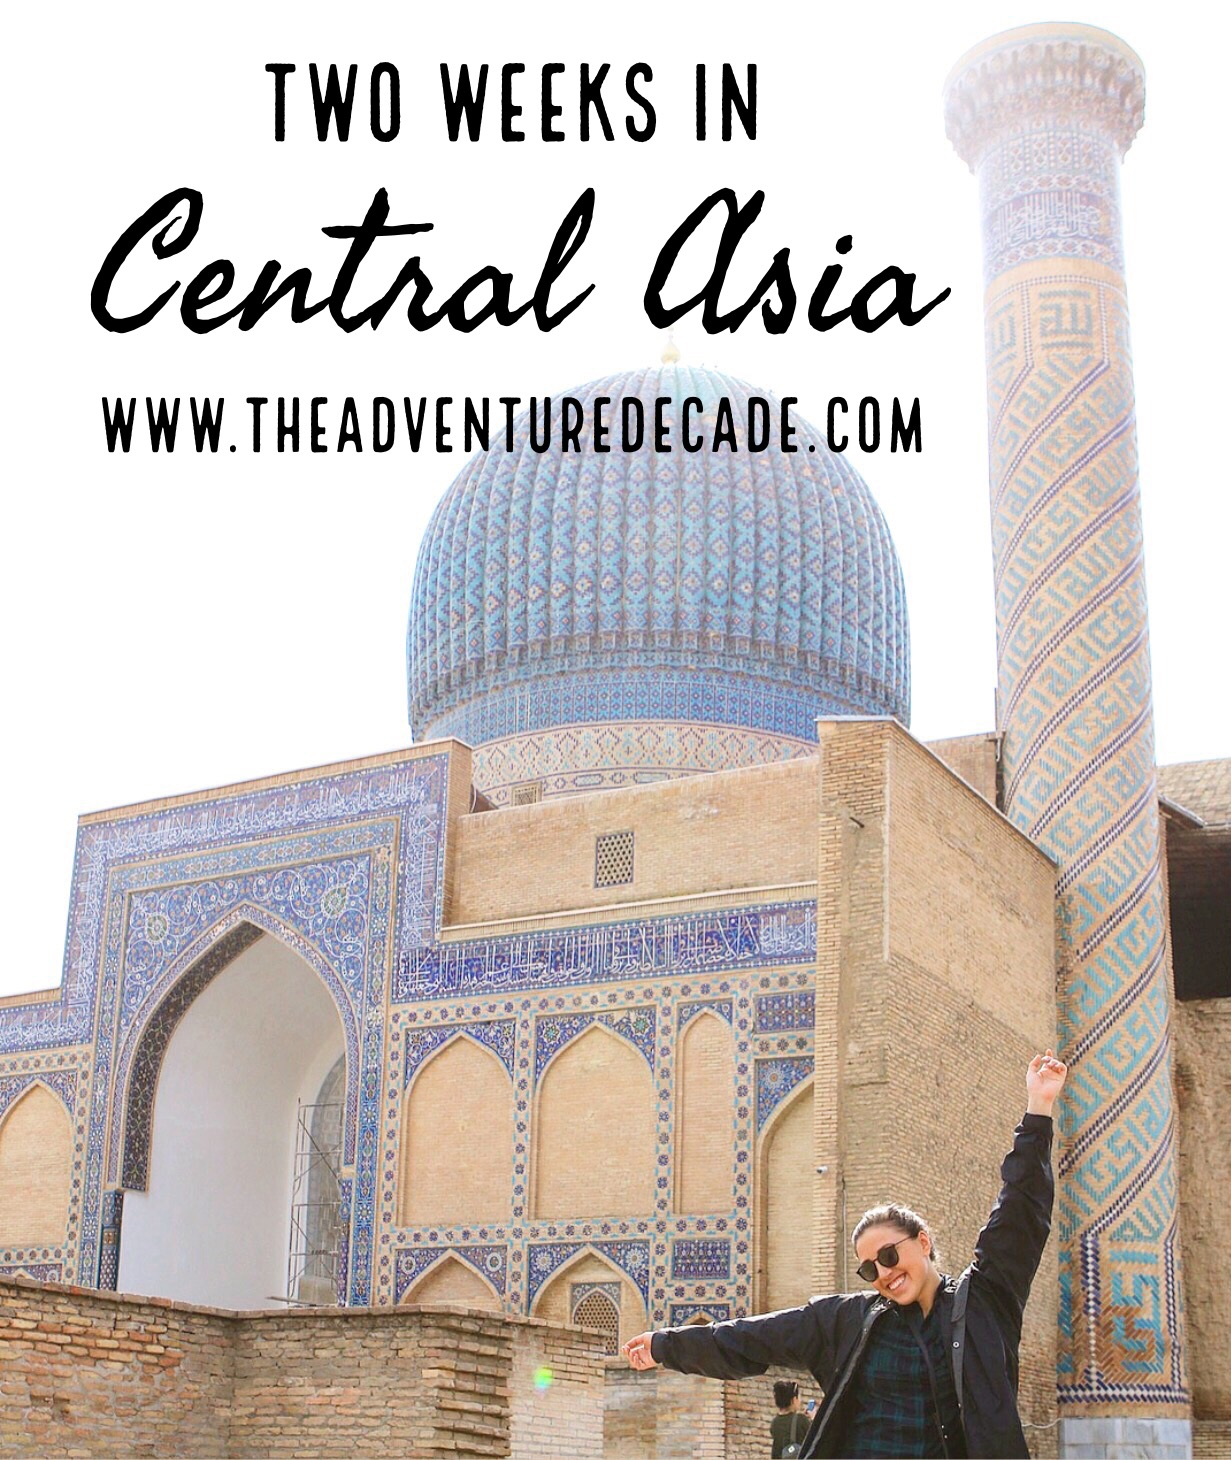 Central Asia - The Adventure Decade